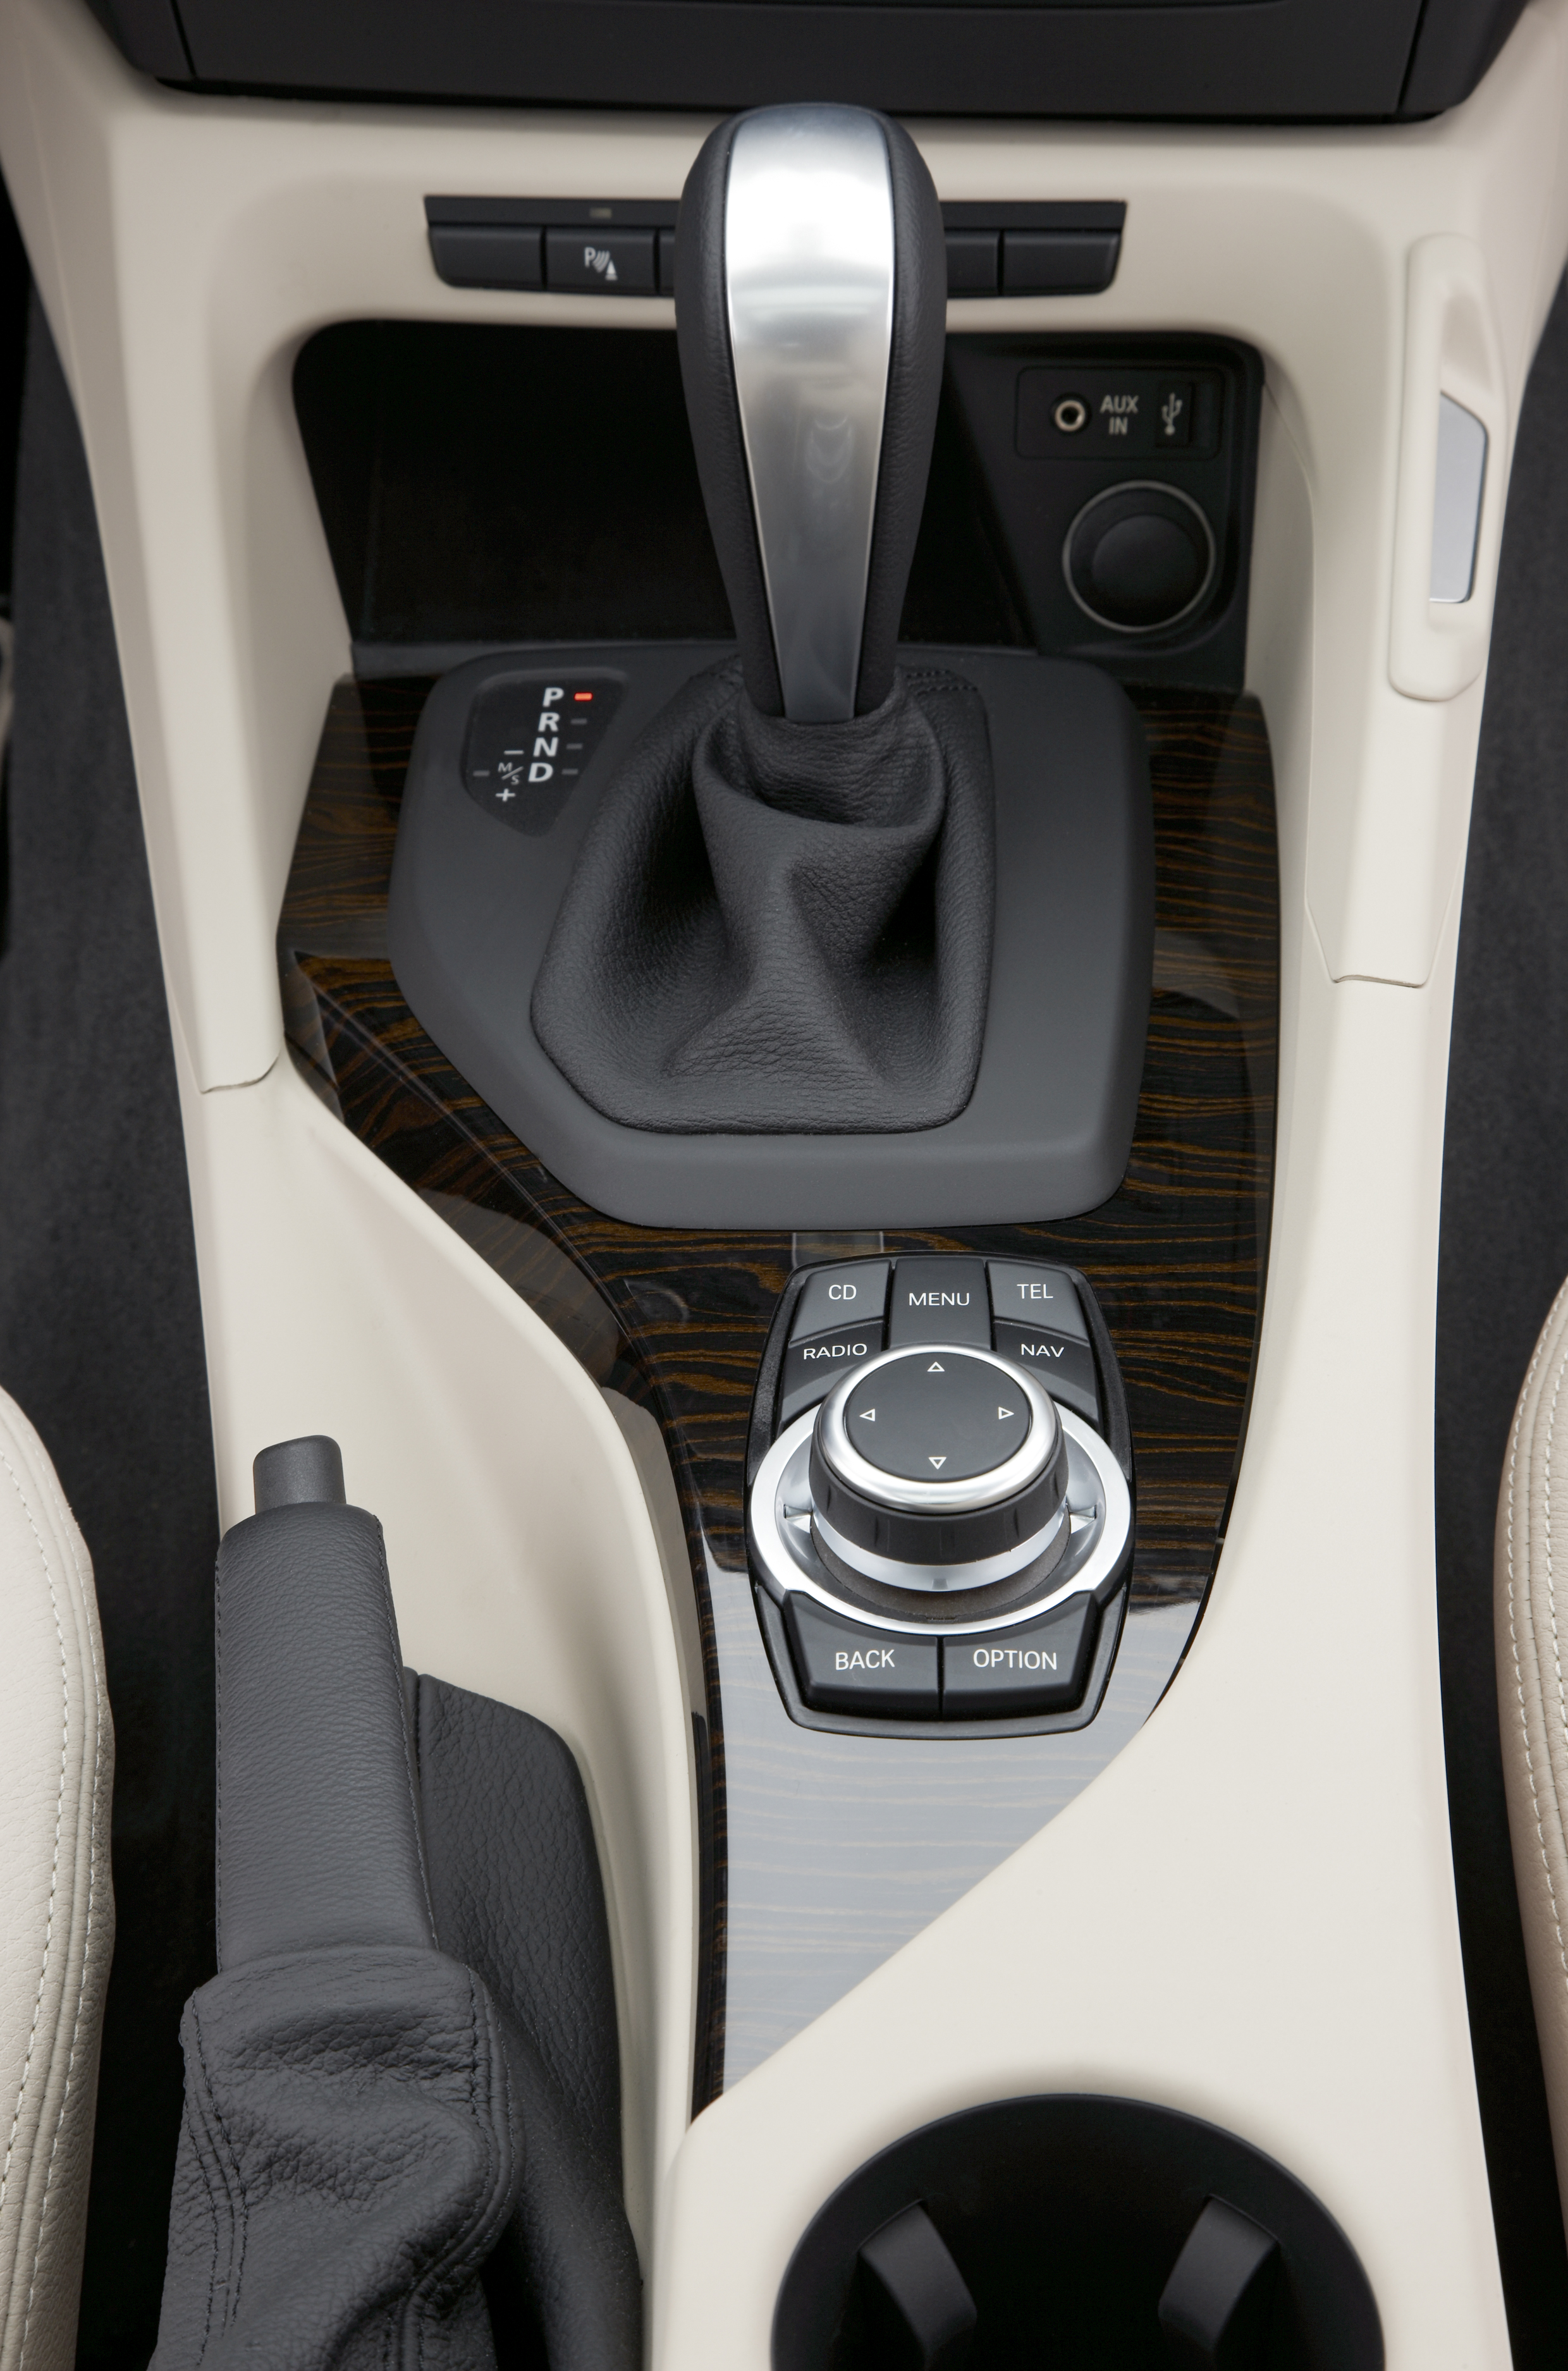 2011 Bmw X1 Interior Review Amp View Bmw Cars Amp Bikes